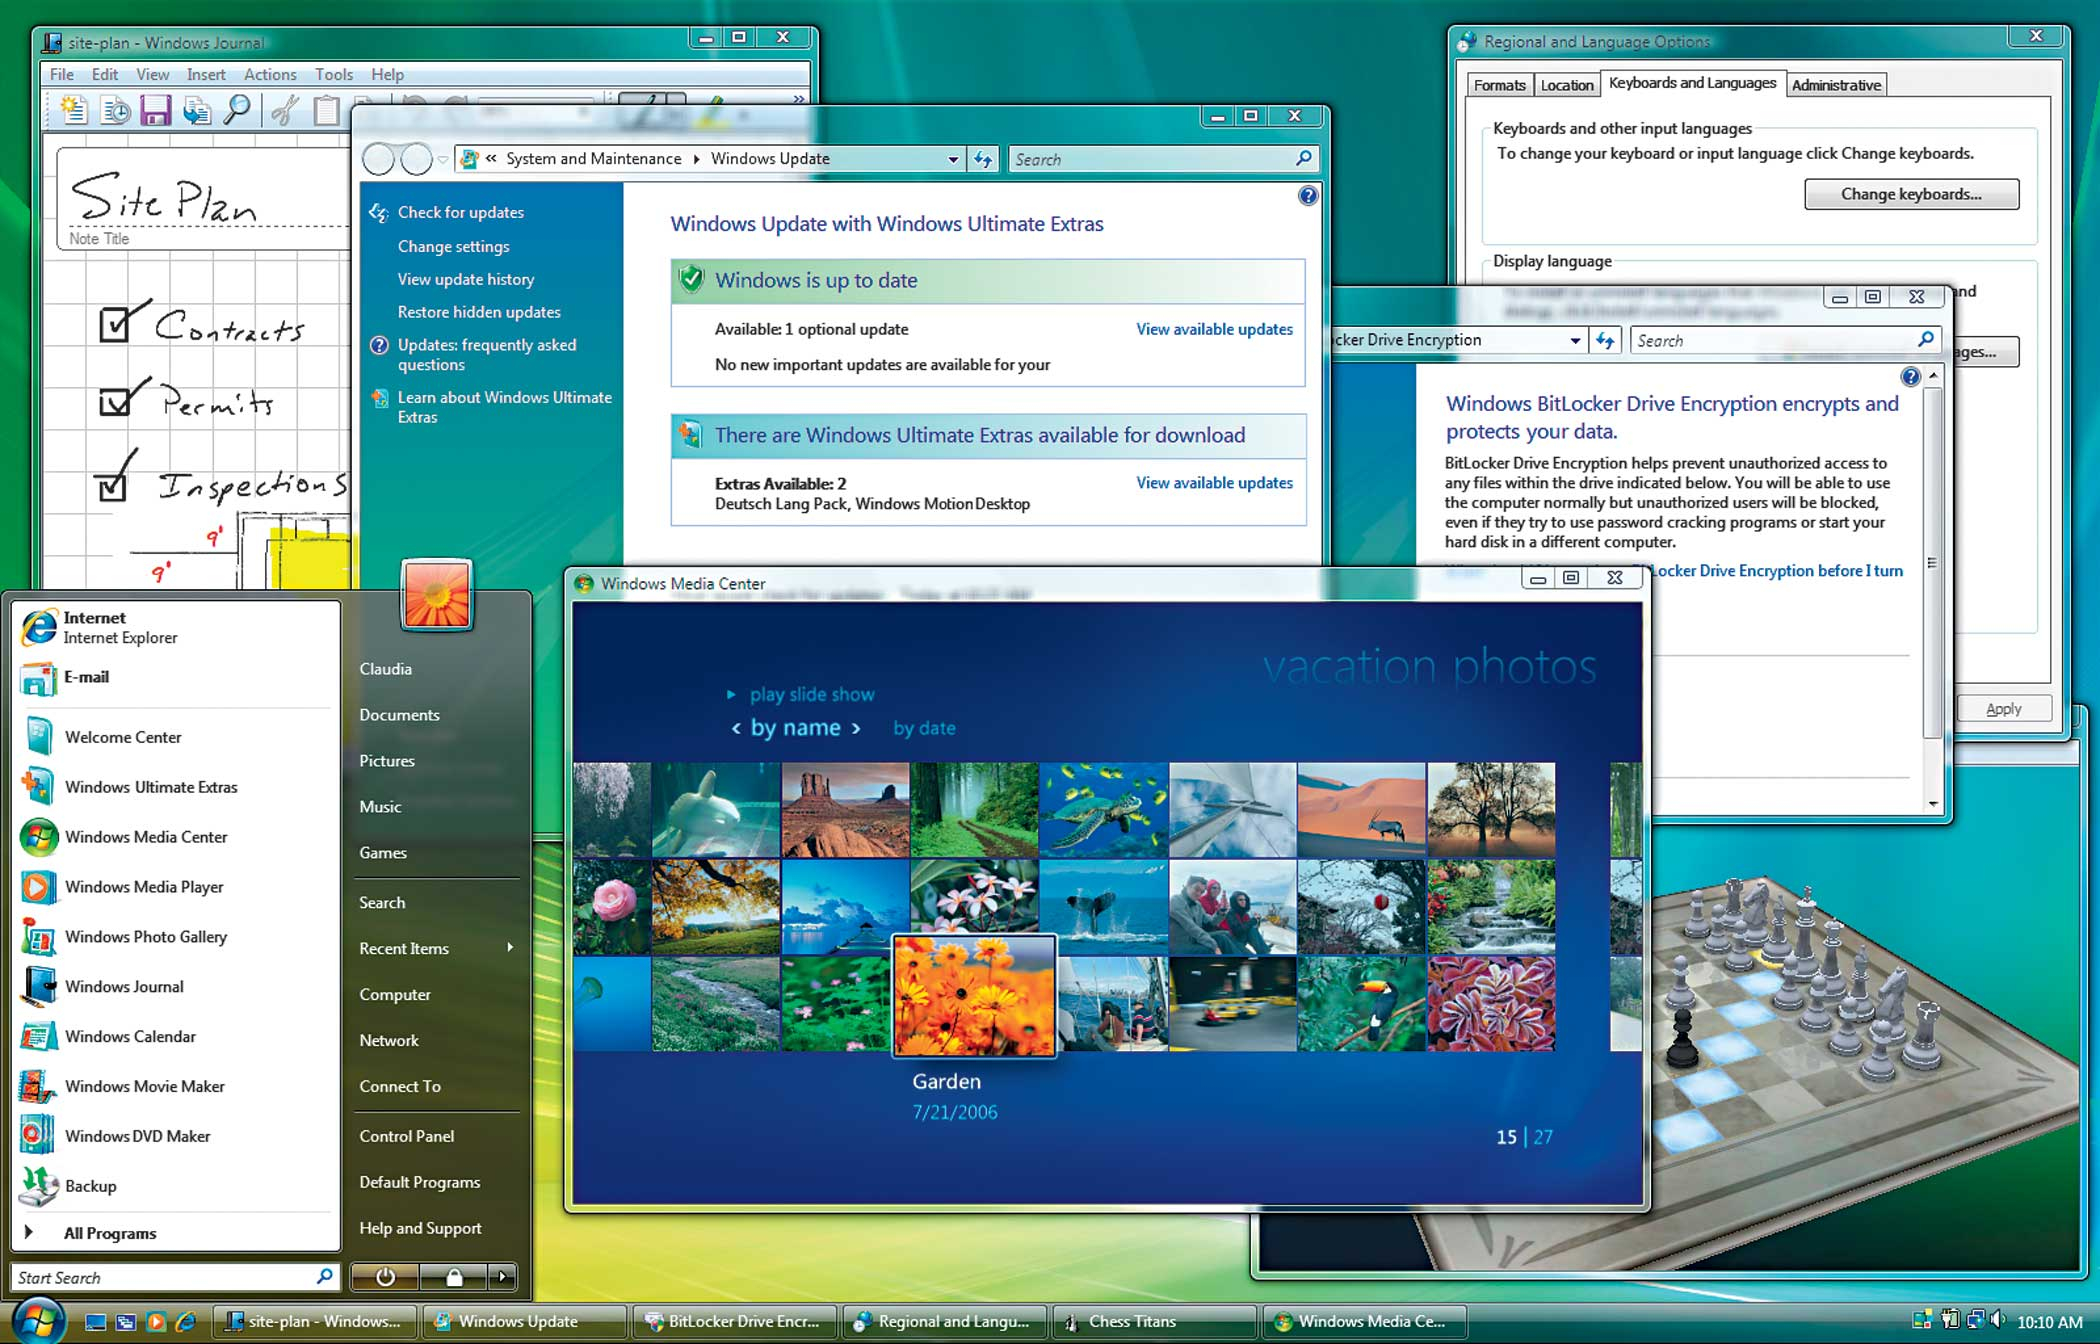 <strong>Windows Vista</strong> released on January 30, 2007, on the heels of the massive success of Windows XP. Vista proved to be a harder sell. Despite security improvements and graphical flourishes, such as transparent window panes and smoother animations, corporate users blanched at the initial price tag and the onerous licensing requirements. Adoption rates flagged as users stuck to their older versions of Windows